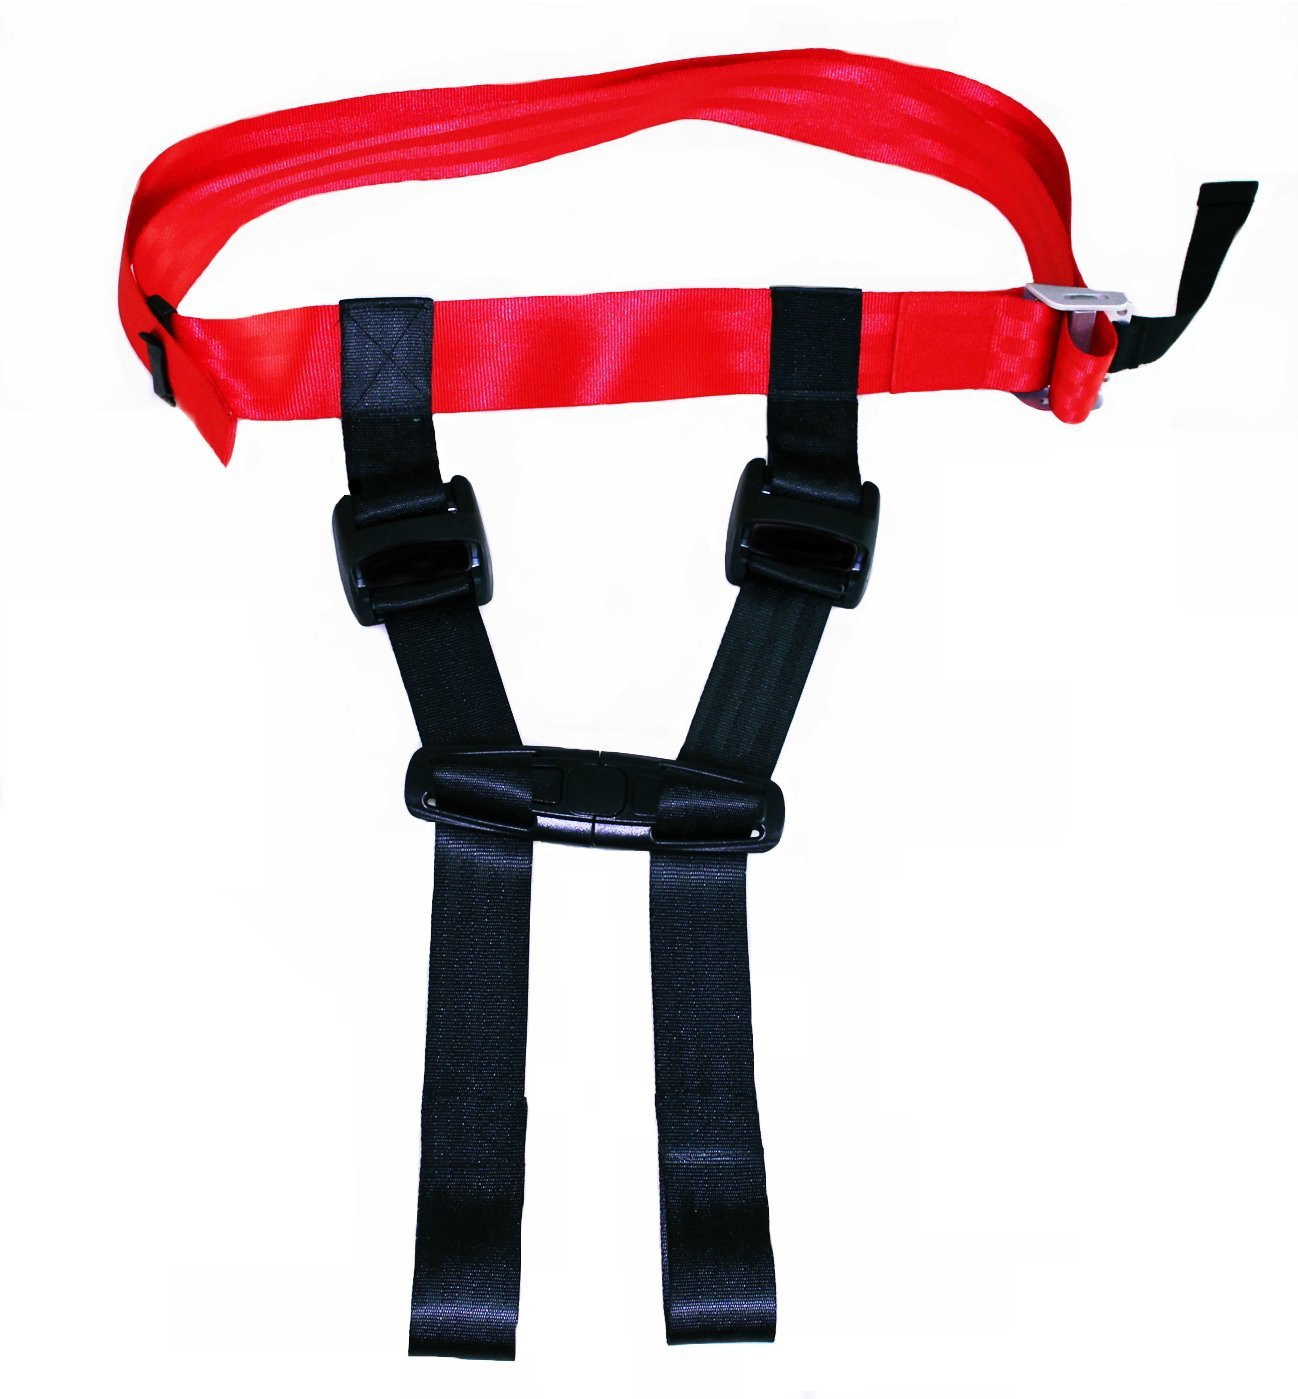 Thorium Safety Airplane Child Harness Strap Seat Belt Protector Complete with Comfortable Kids Travel Neck Pillow by Thorium (Image #2)